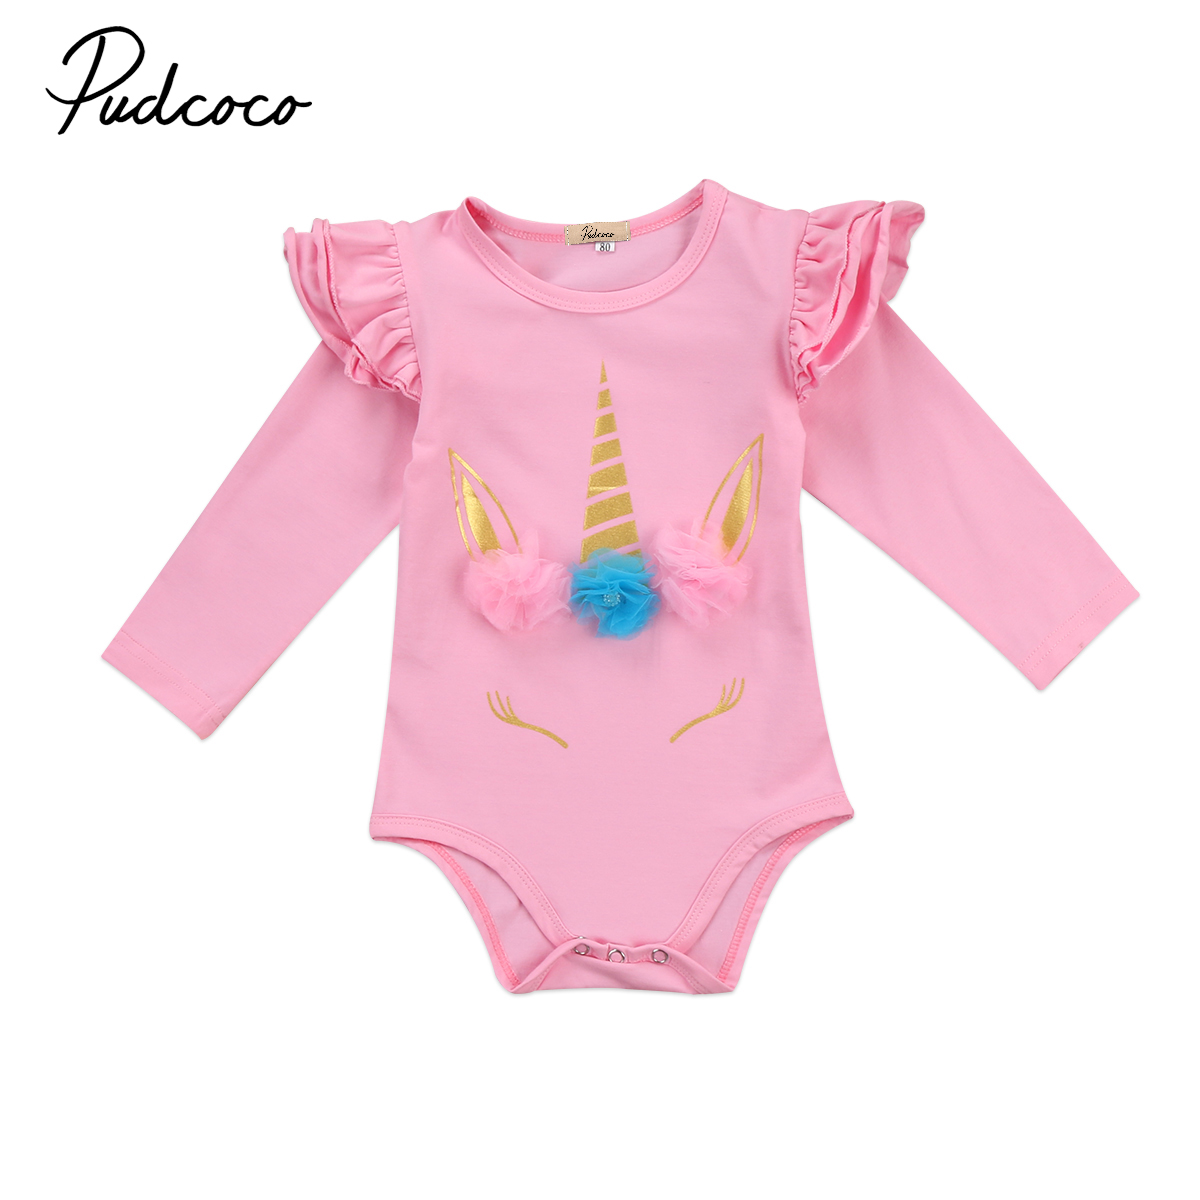 Pudcoco Toddler Infant Kids Baby Girls Cotton Unicorn Romper Long/Short Sleeve Summer Autumn Clothes Outfits One-Piece baby girl 1st birthday outfits short sleeve infant clothing sets lace romper dress headband shoe toddler tutu set baby s clothes